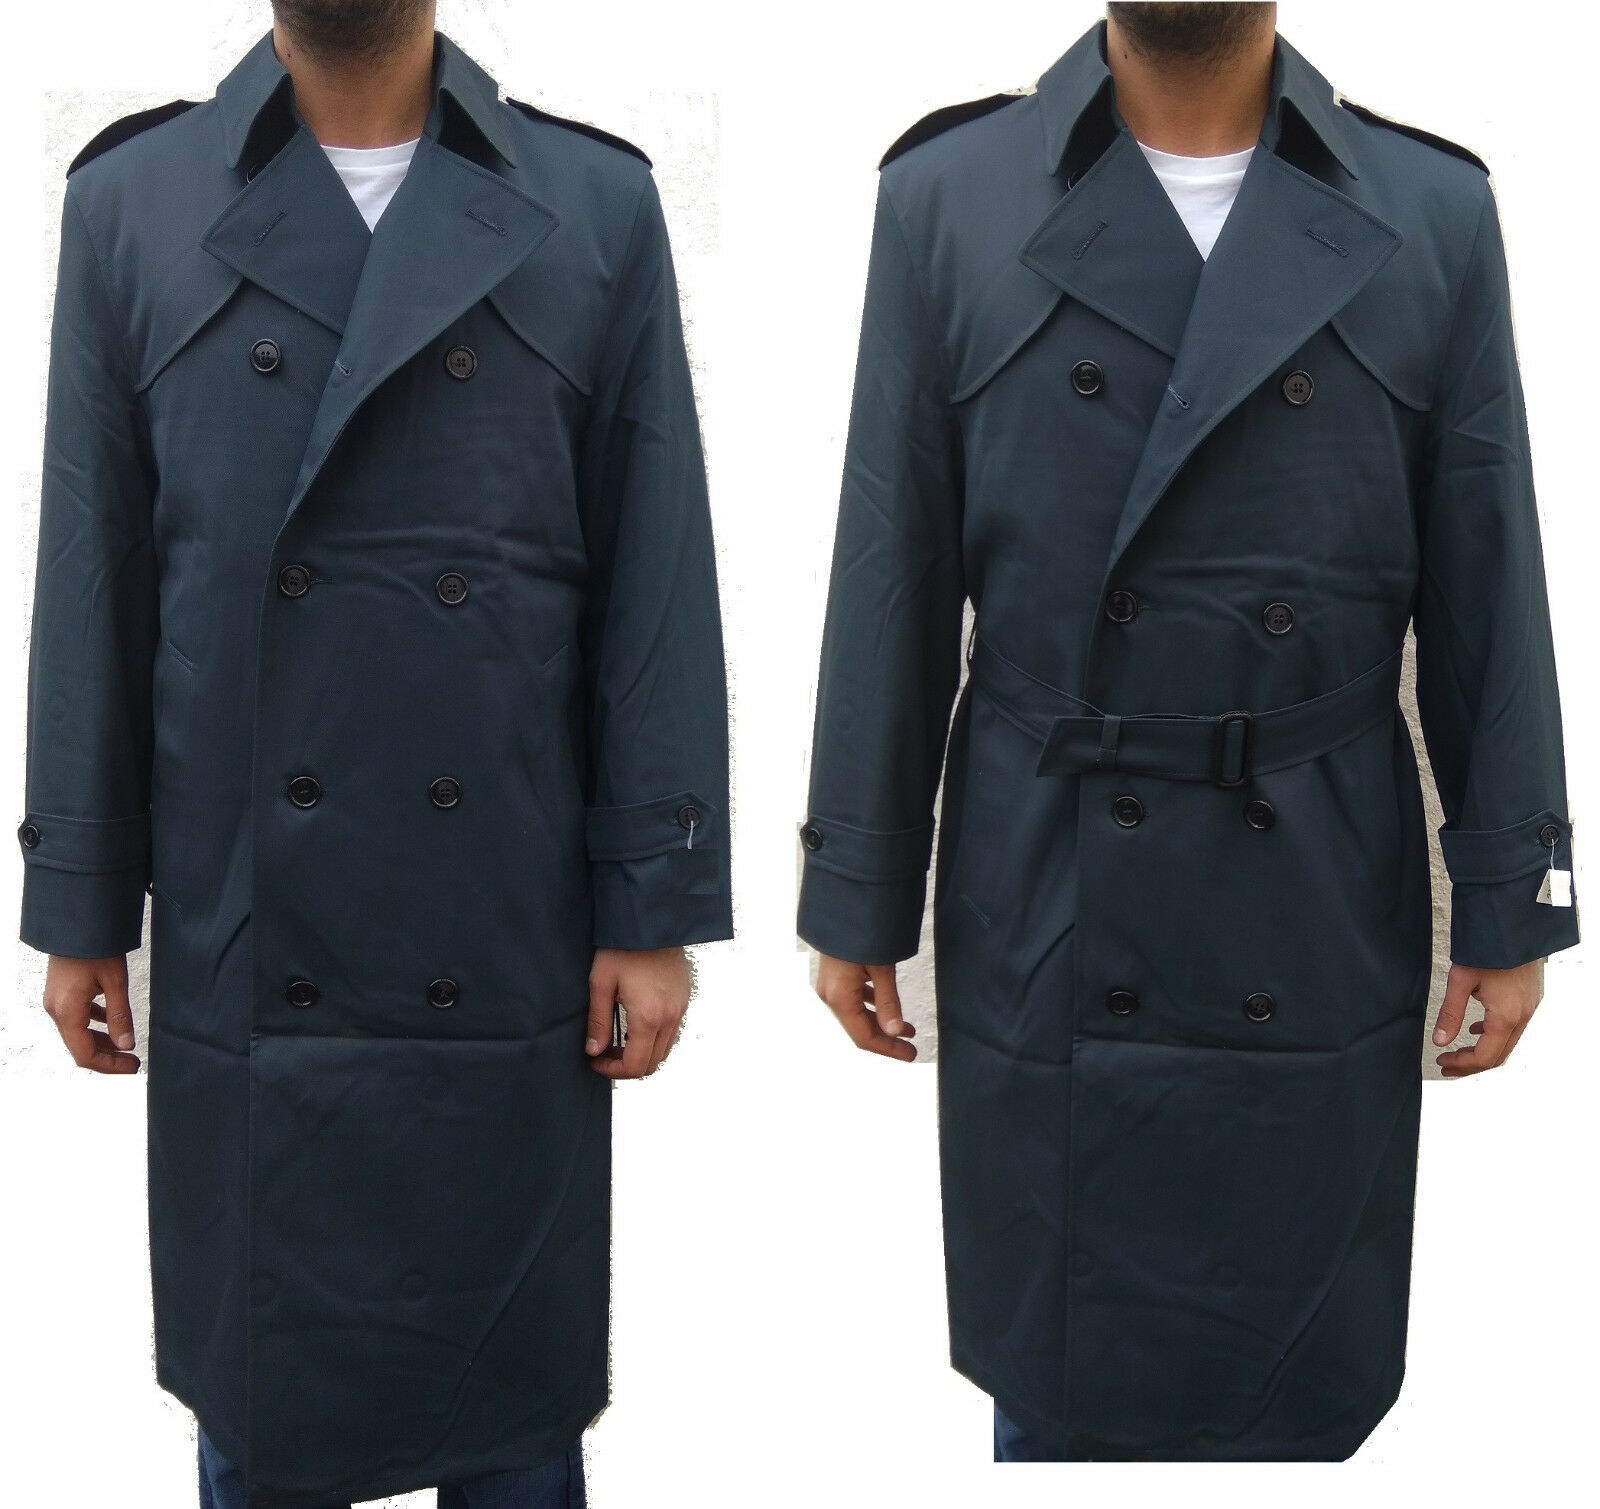 MENS MILITARY REEFER VINTAGE TORCHWOOD PEACOAT TRENCH COAT DOUBLE BREASTED L XL